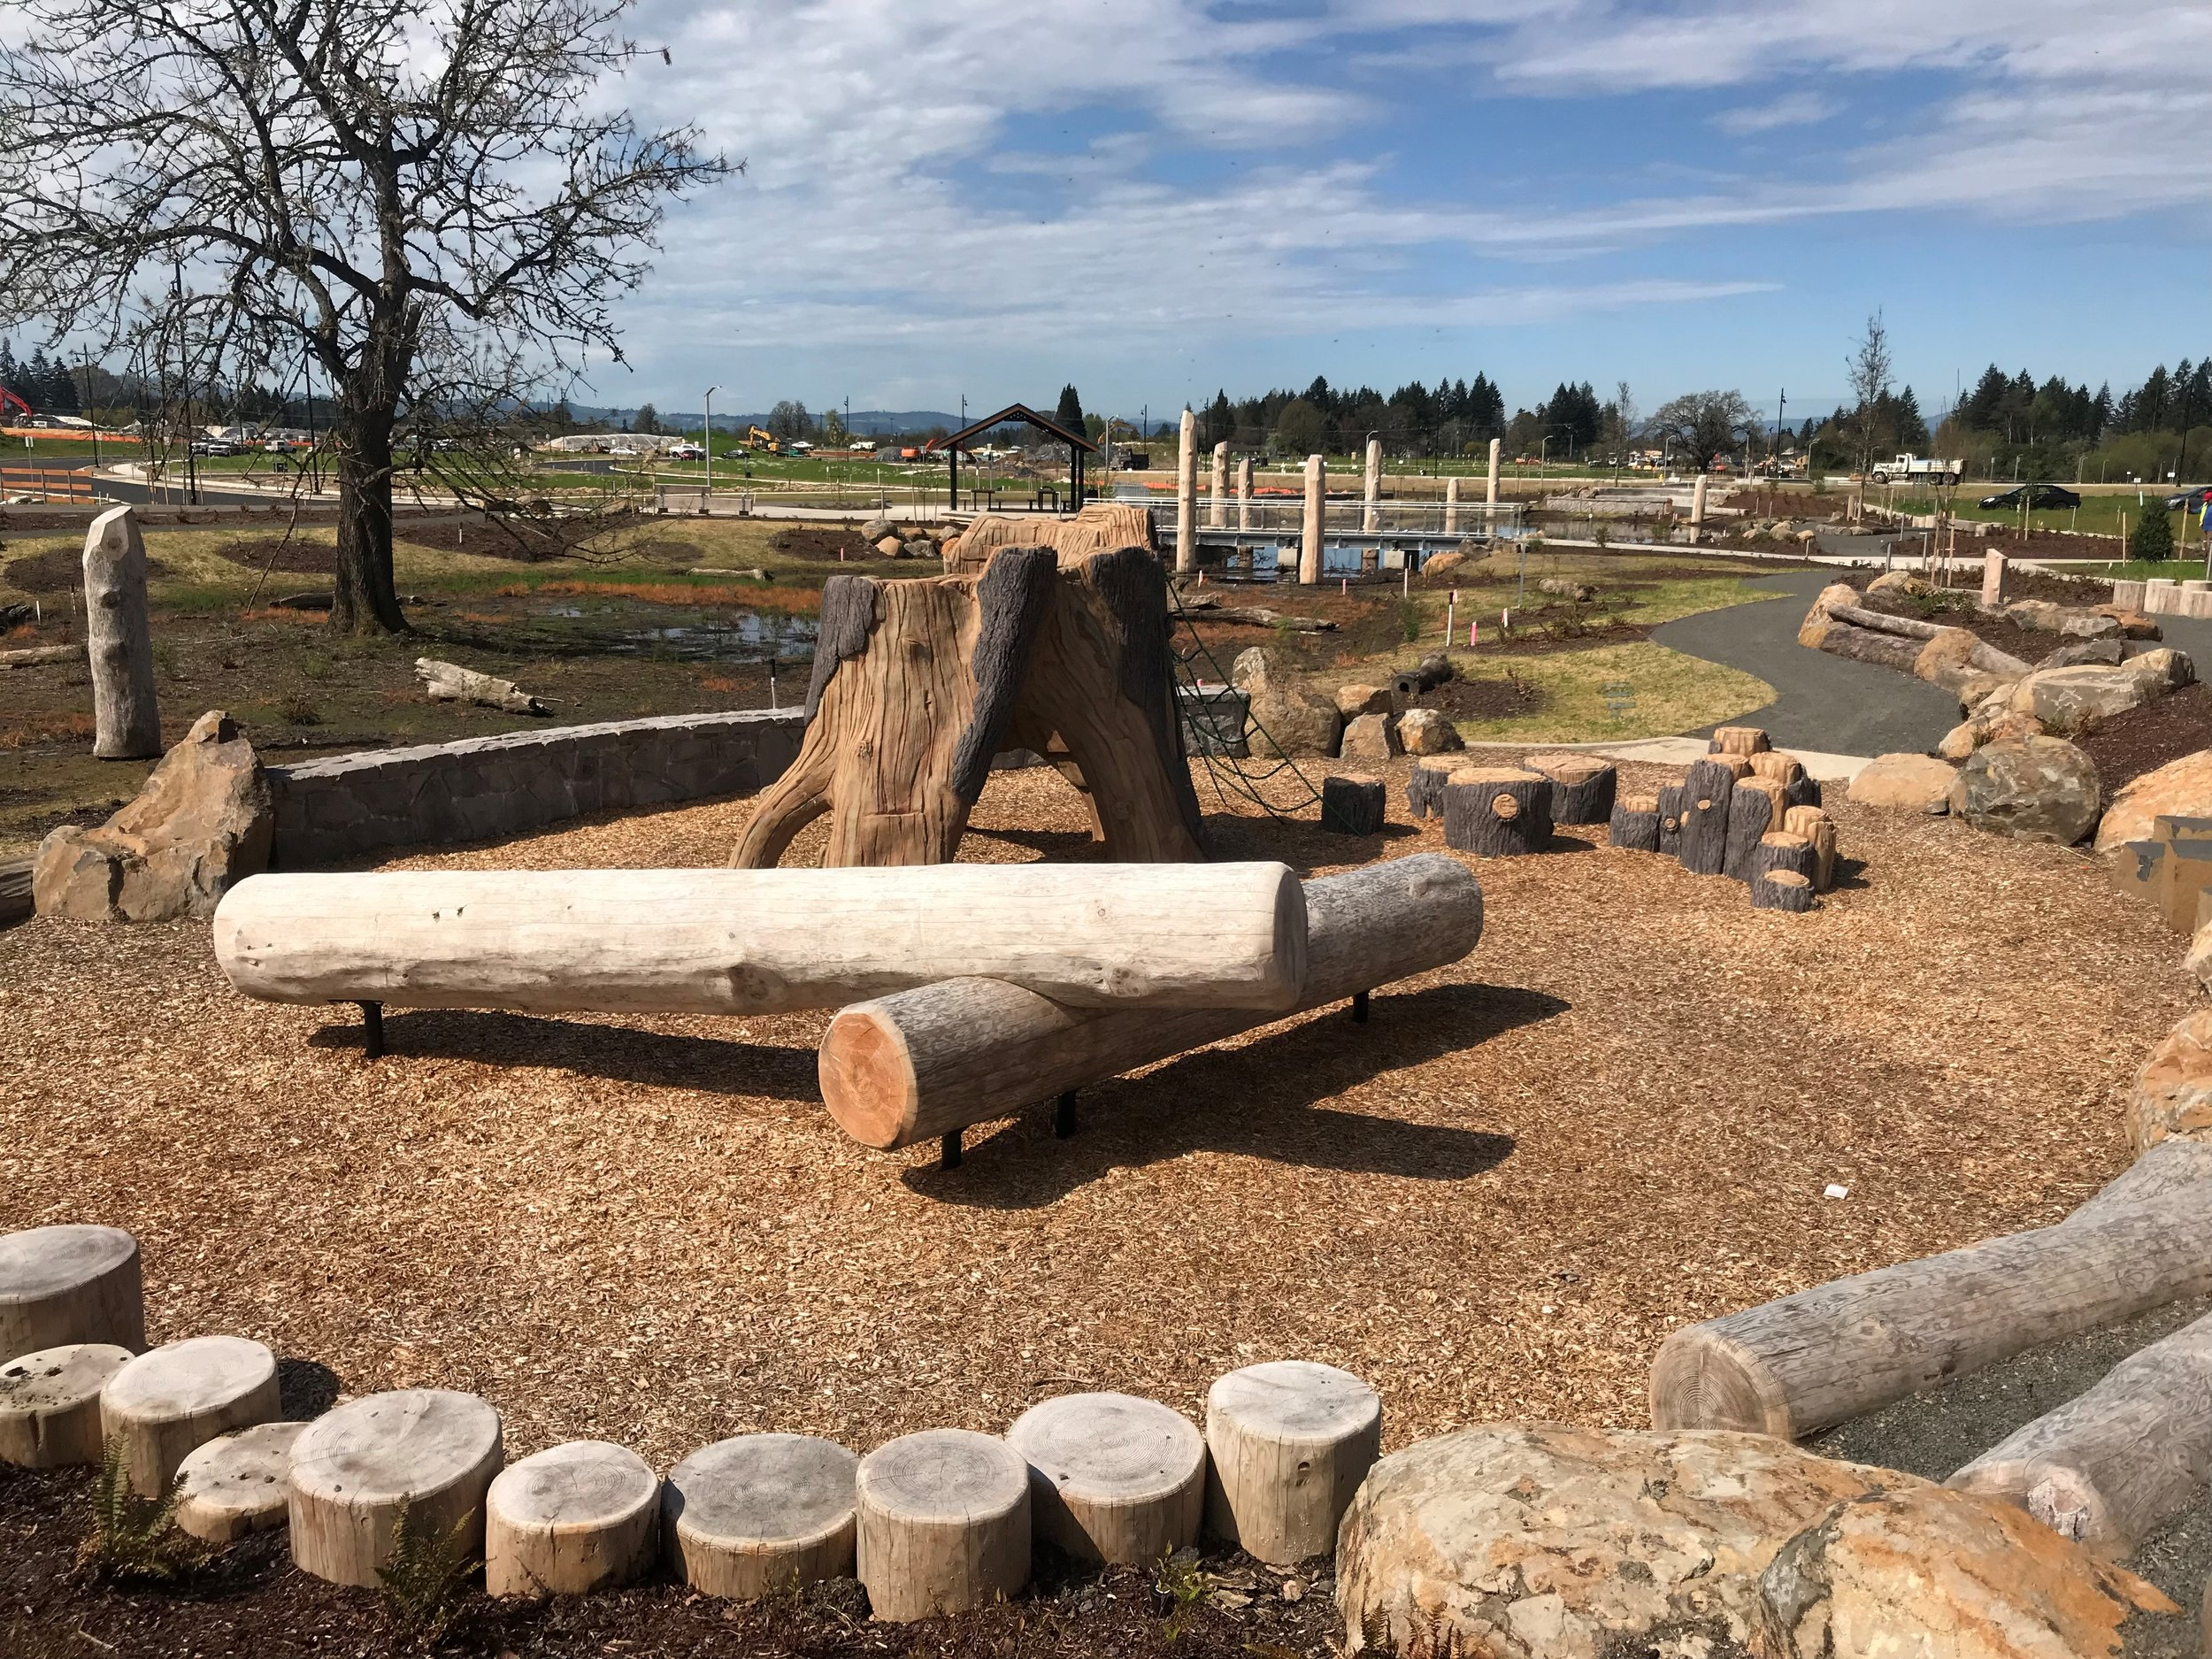 logs and stumps form a playground in front of a dormant oak tree